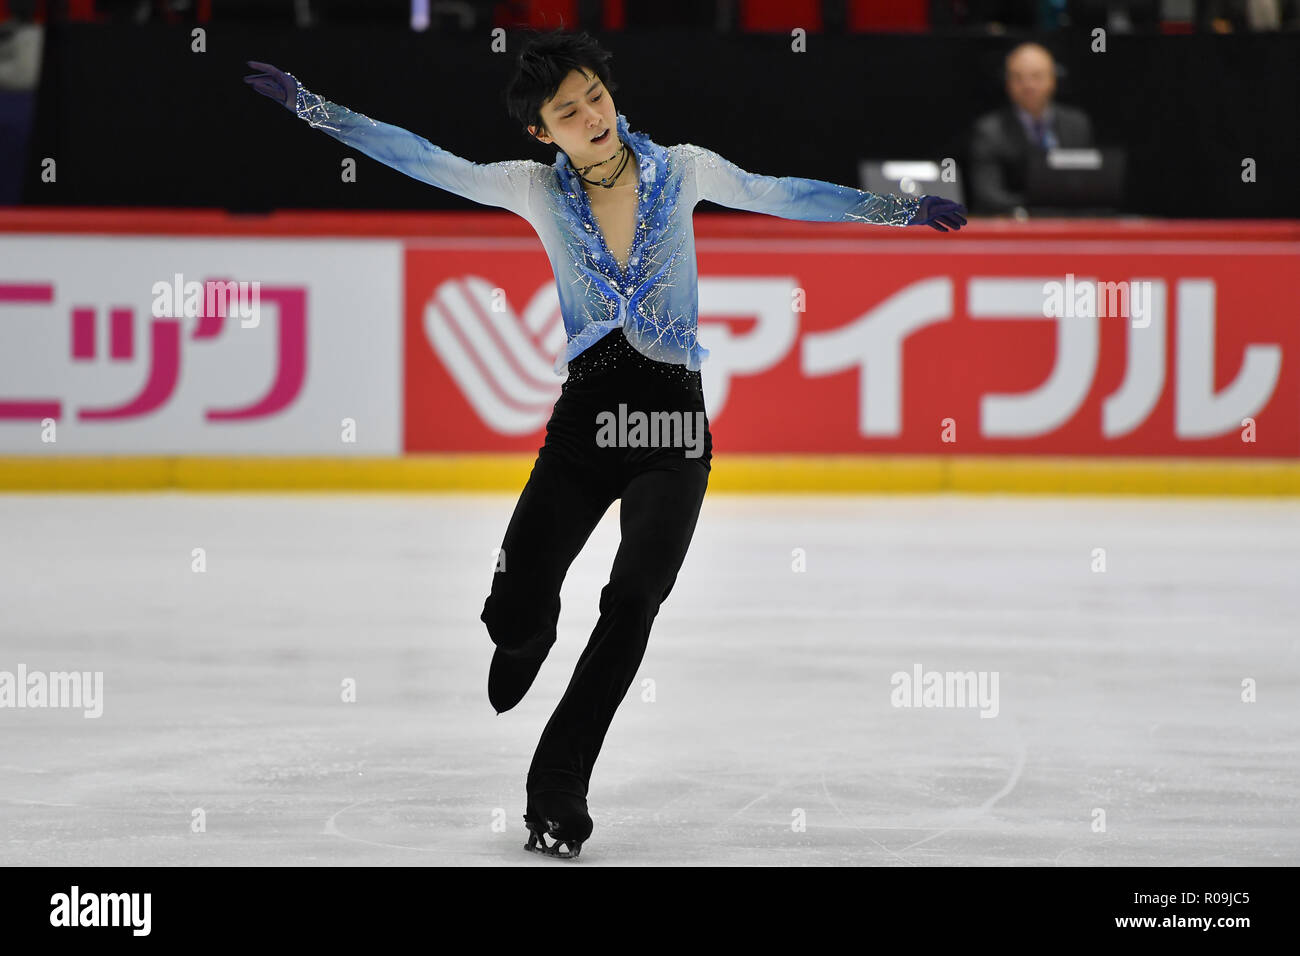 Hanyu Yuzuru Stock Photos & Hanyu Yuzuru Stock Images - Alamy